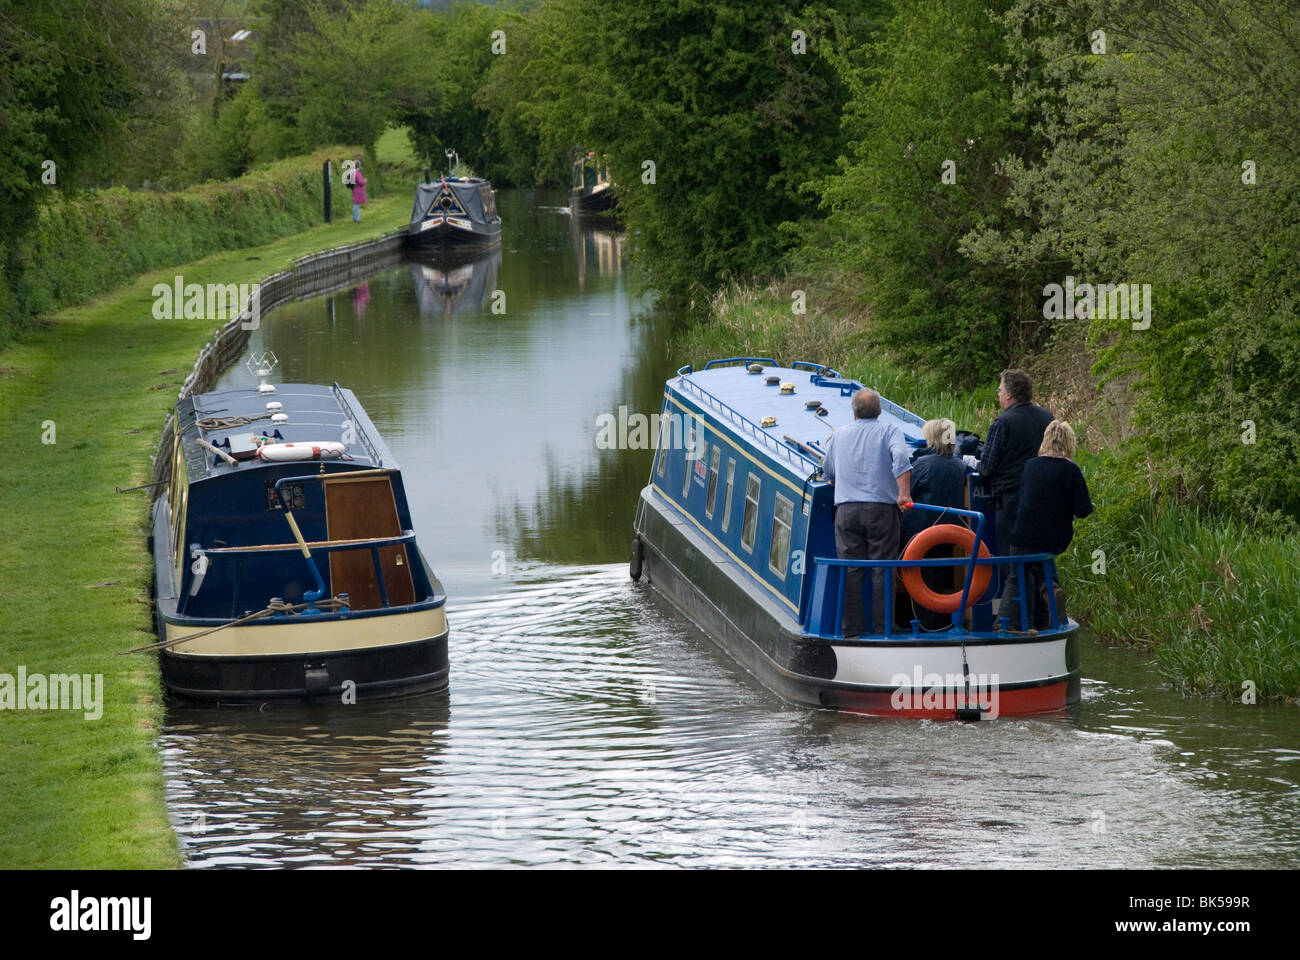 Narrow boats cruising the Llangollen Canal, England, United Kingdom, Europe Stock Photo